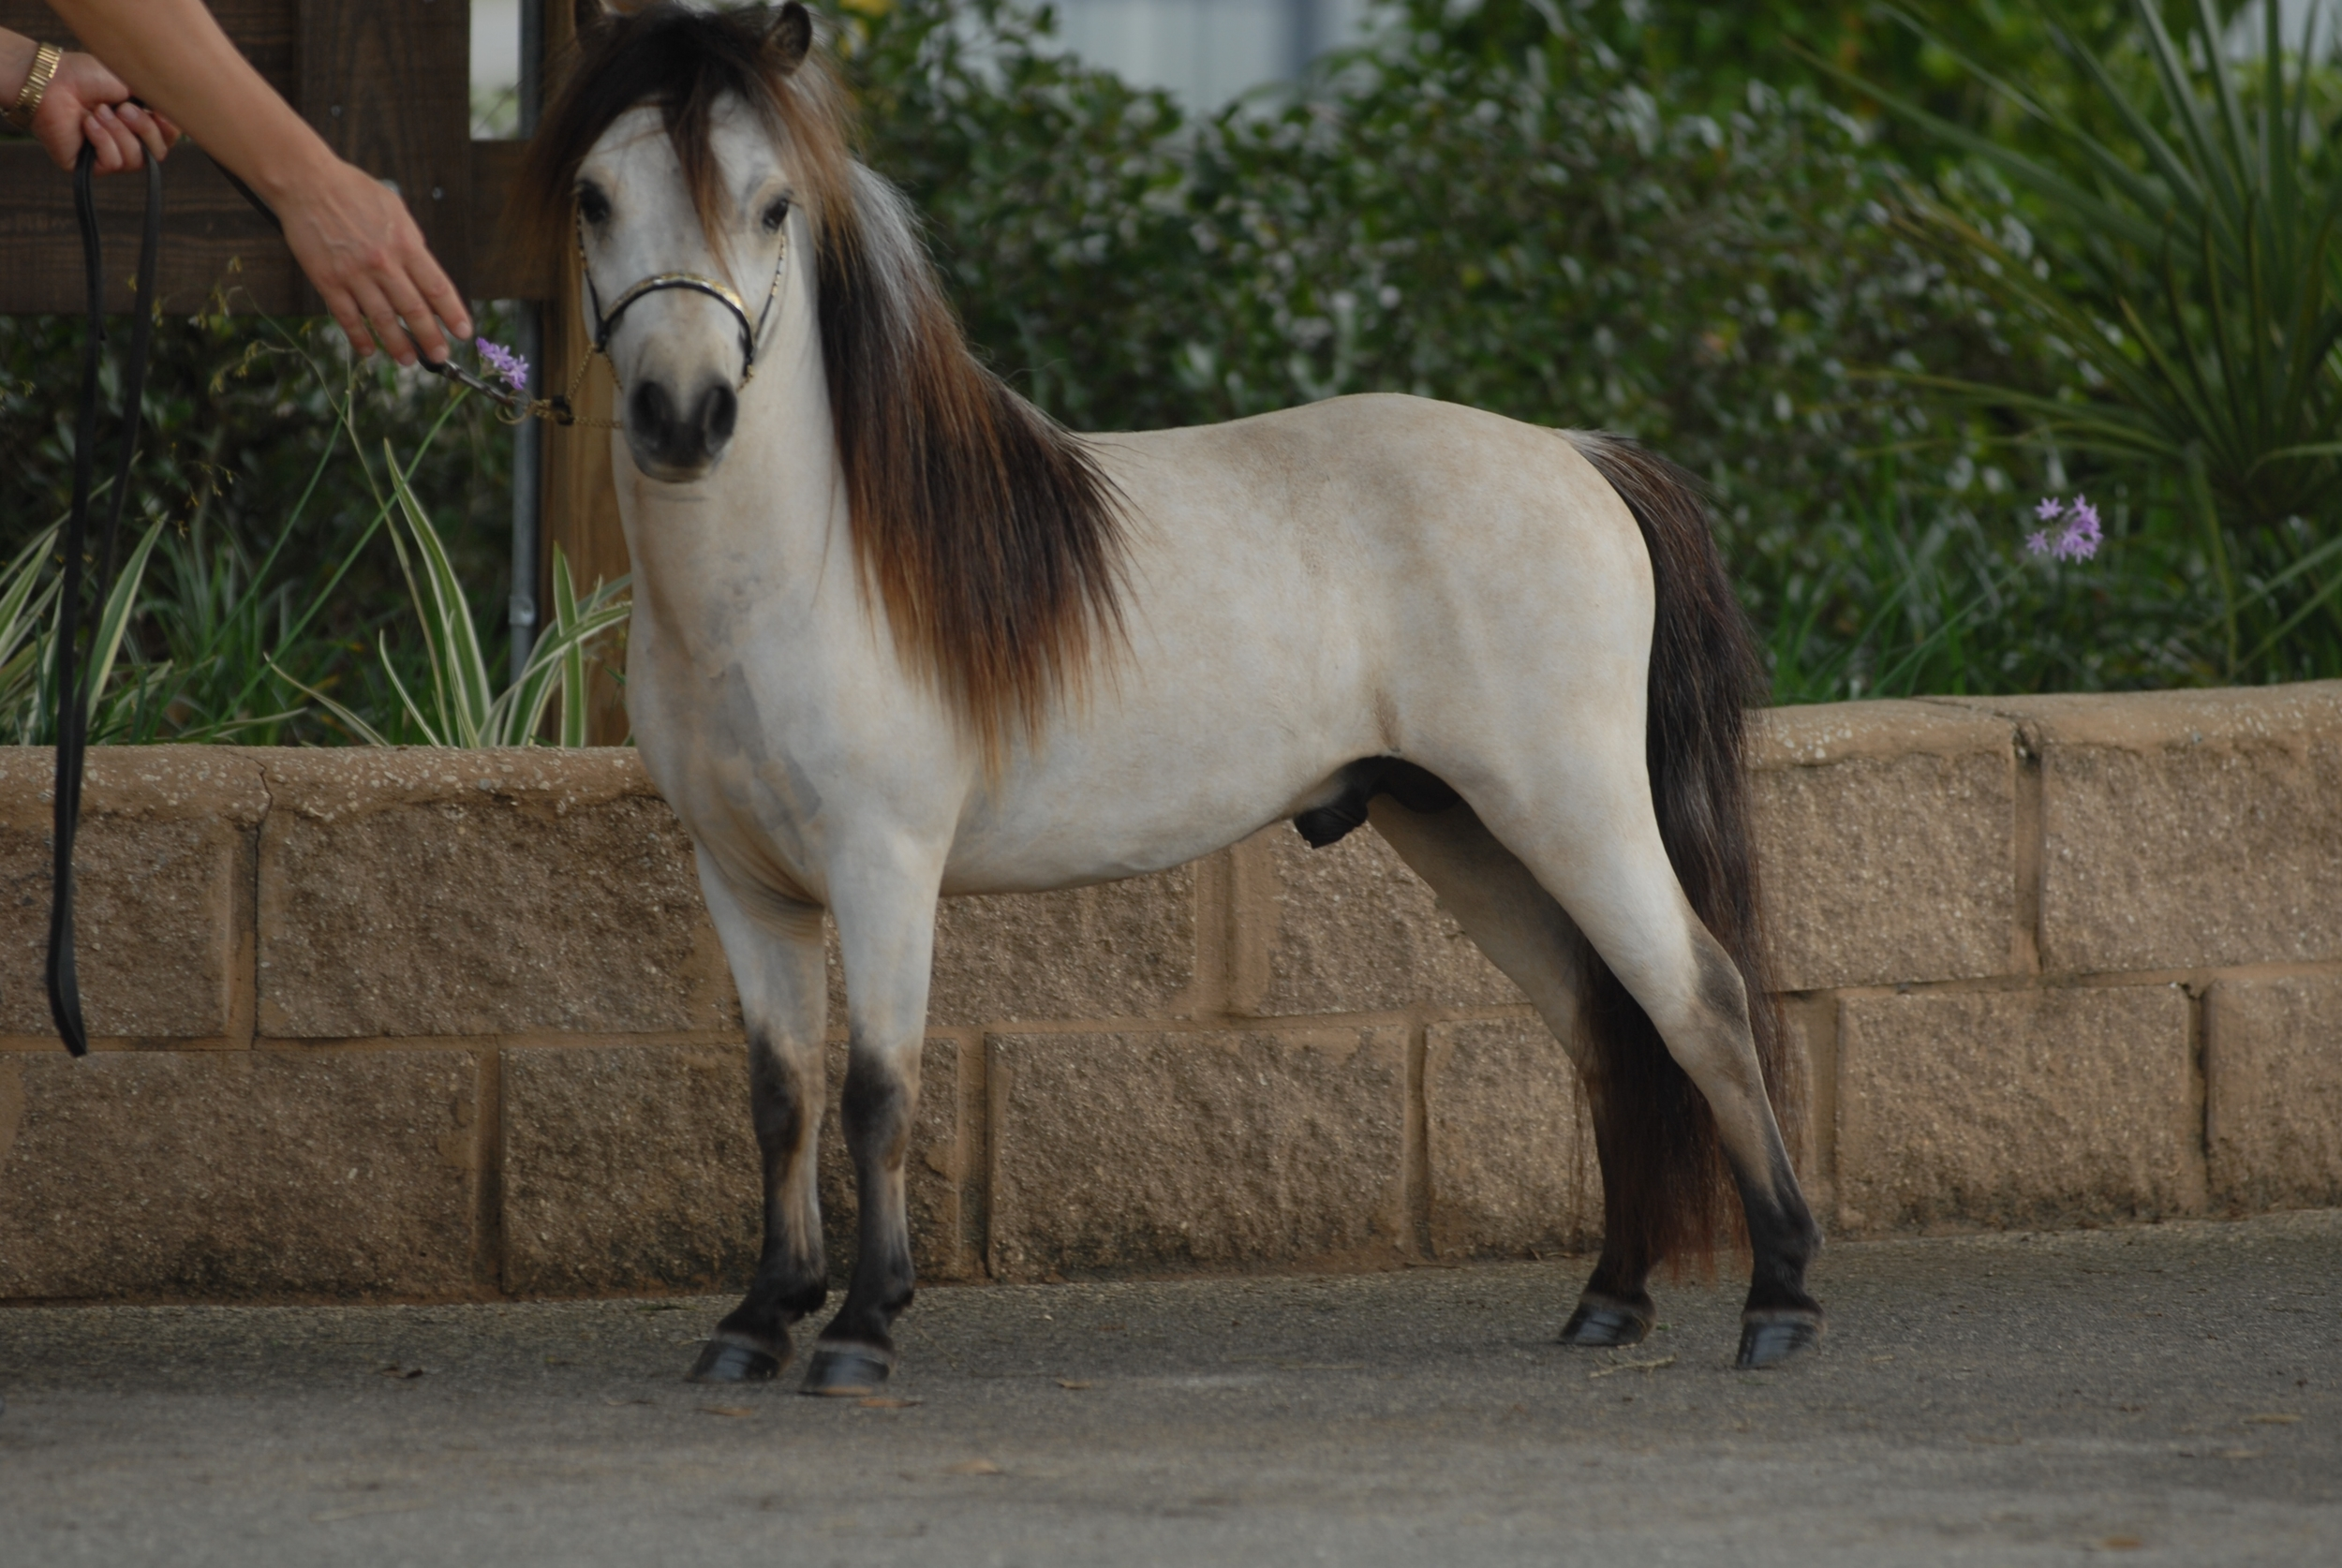 """Houdini"" 2 years old, natural look = straight from the field, only body clipped, but no make up or color enhancements used"